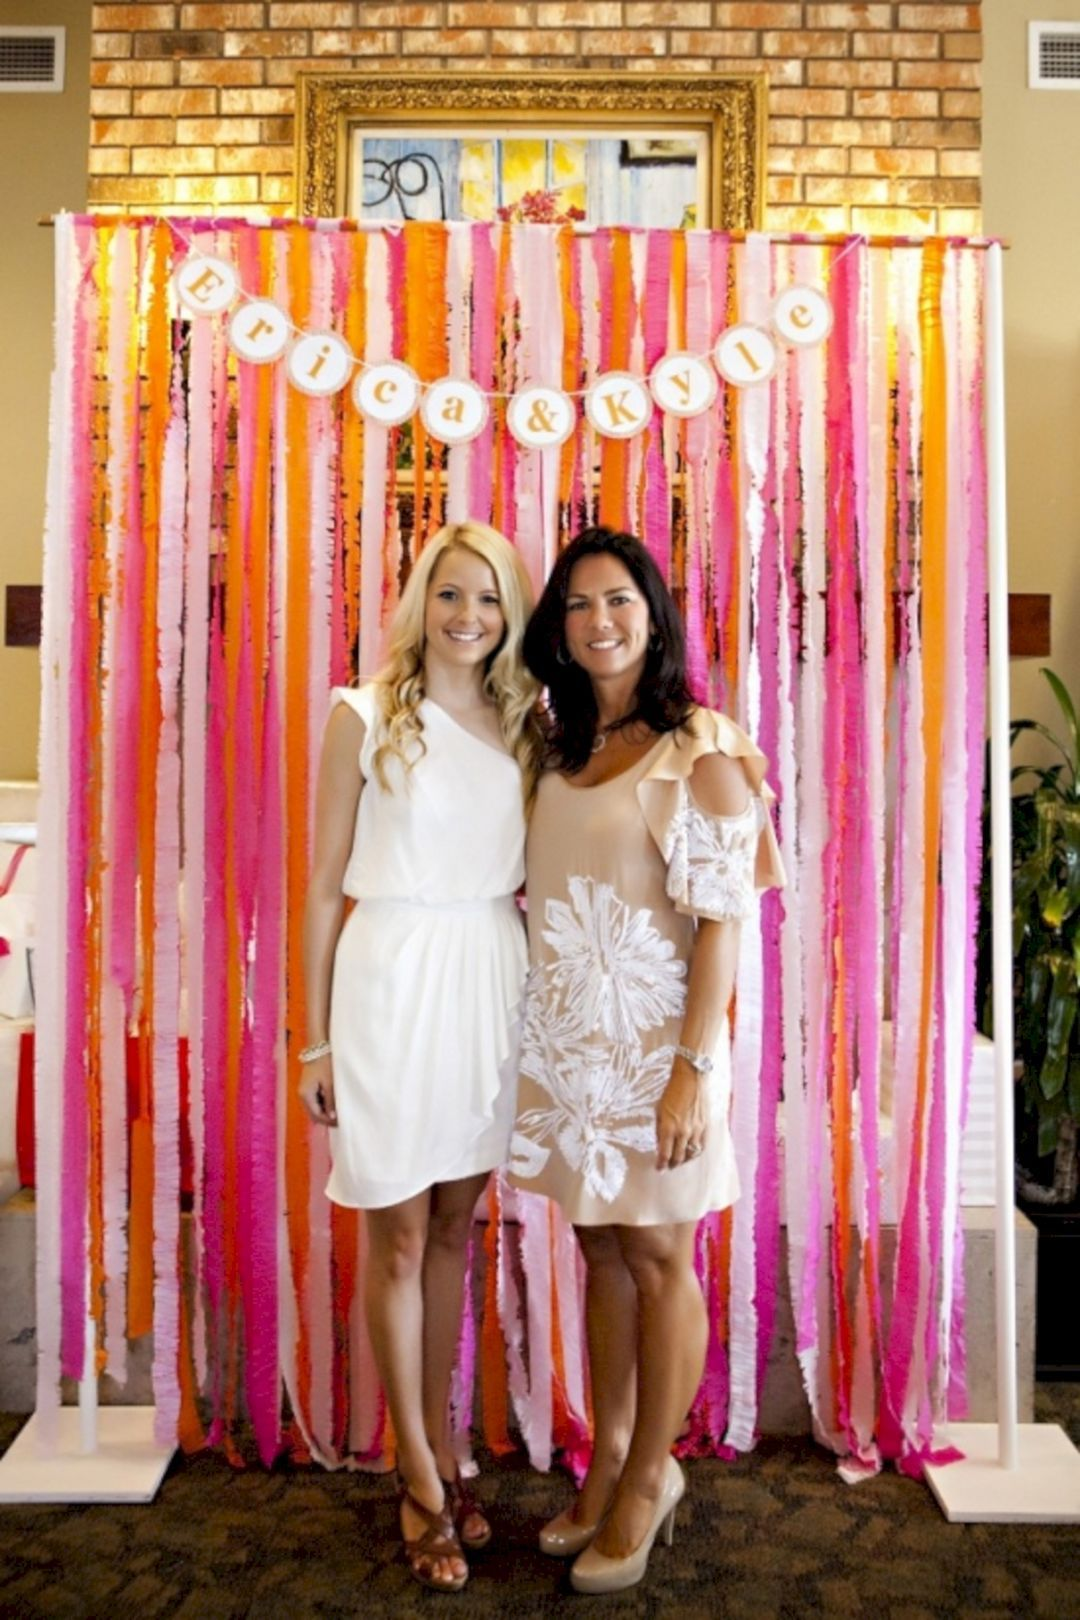 Large Hanging Curtain Decorations//Photo Booth-5 Designs WEDDING//PARTY BACKDROPS